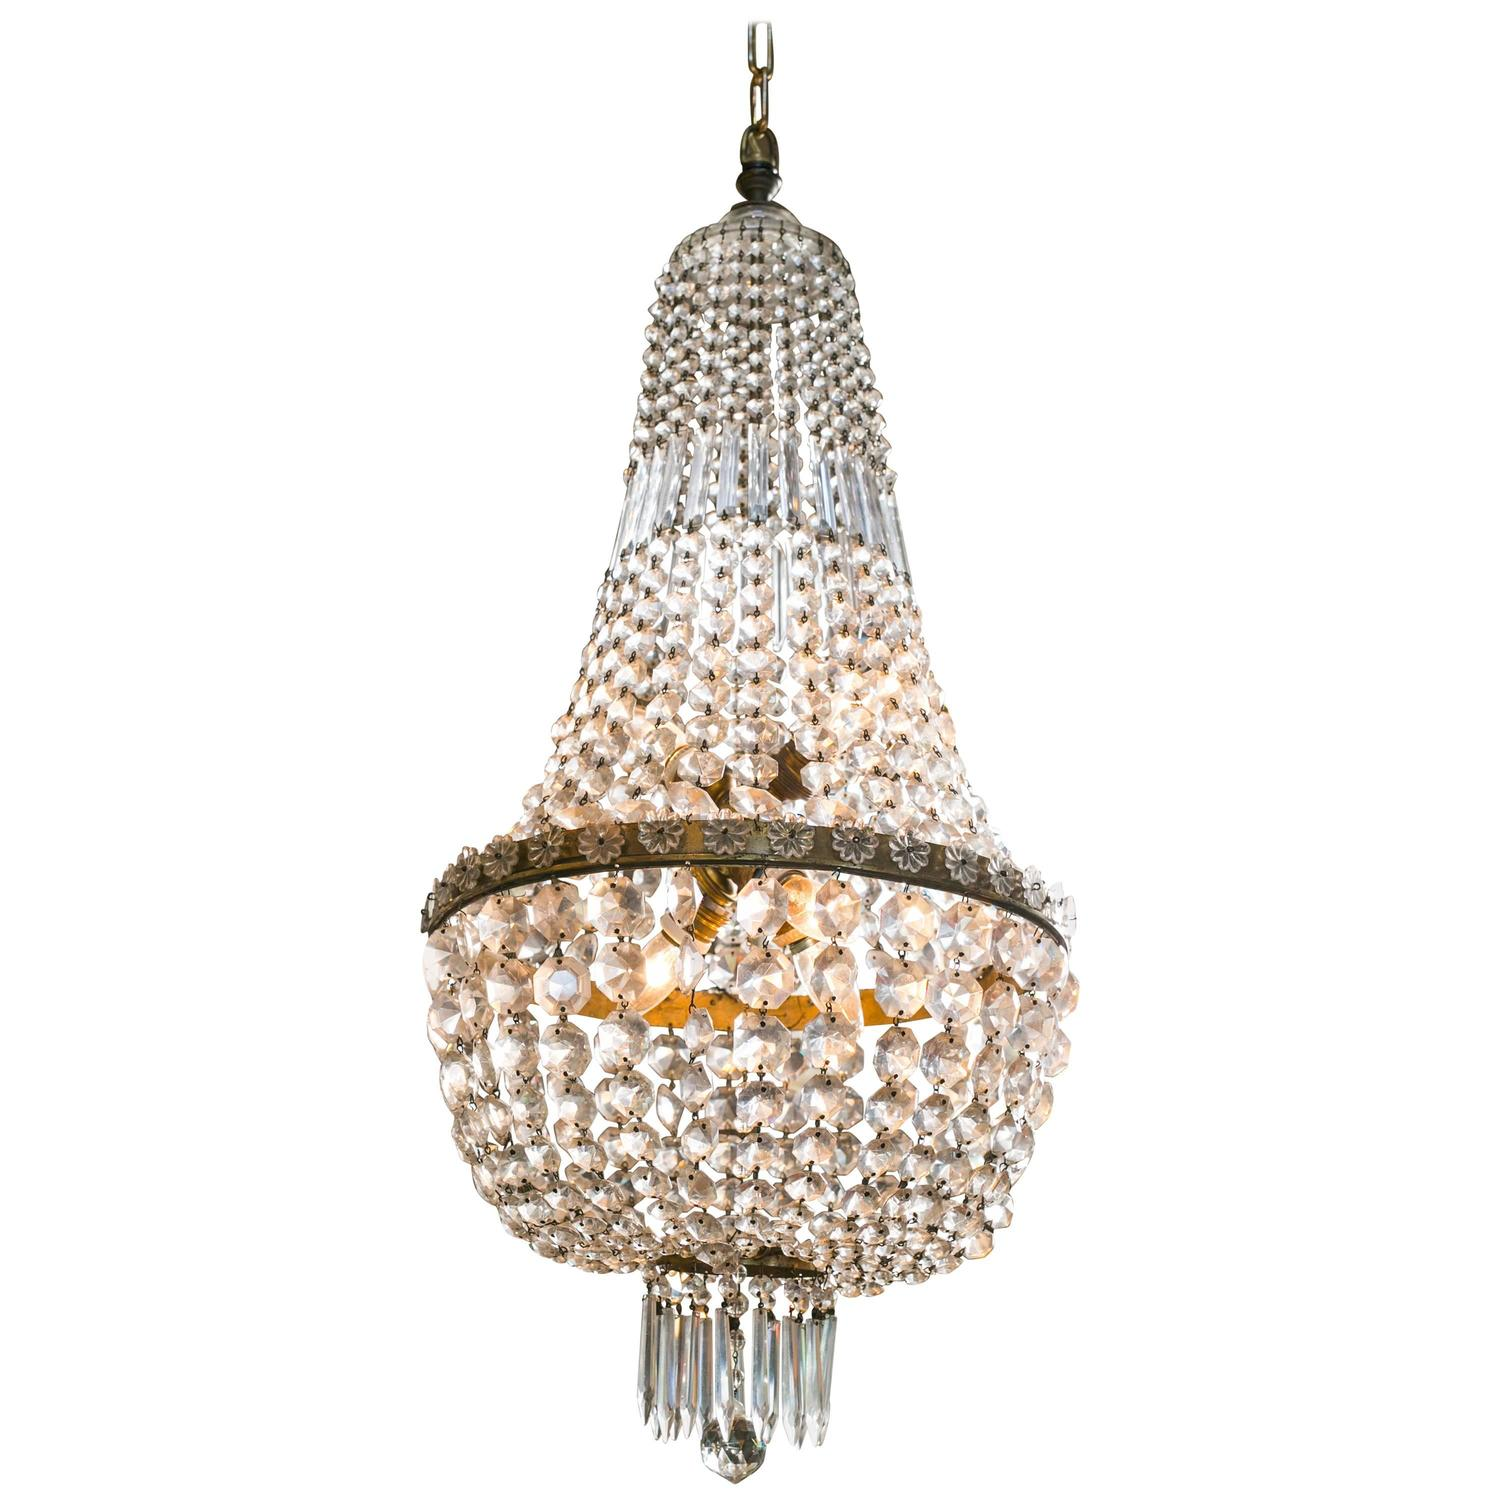 Classic Empire Style Crystal Chandelier For Sale At 1stdibs